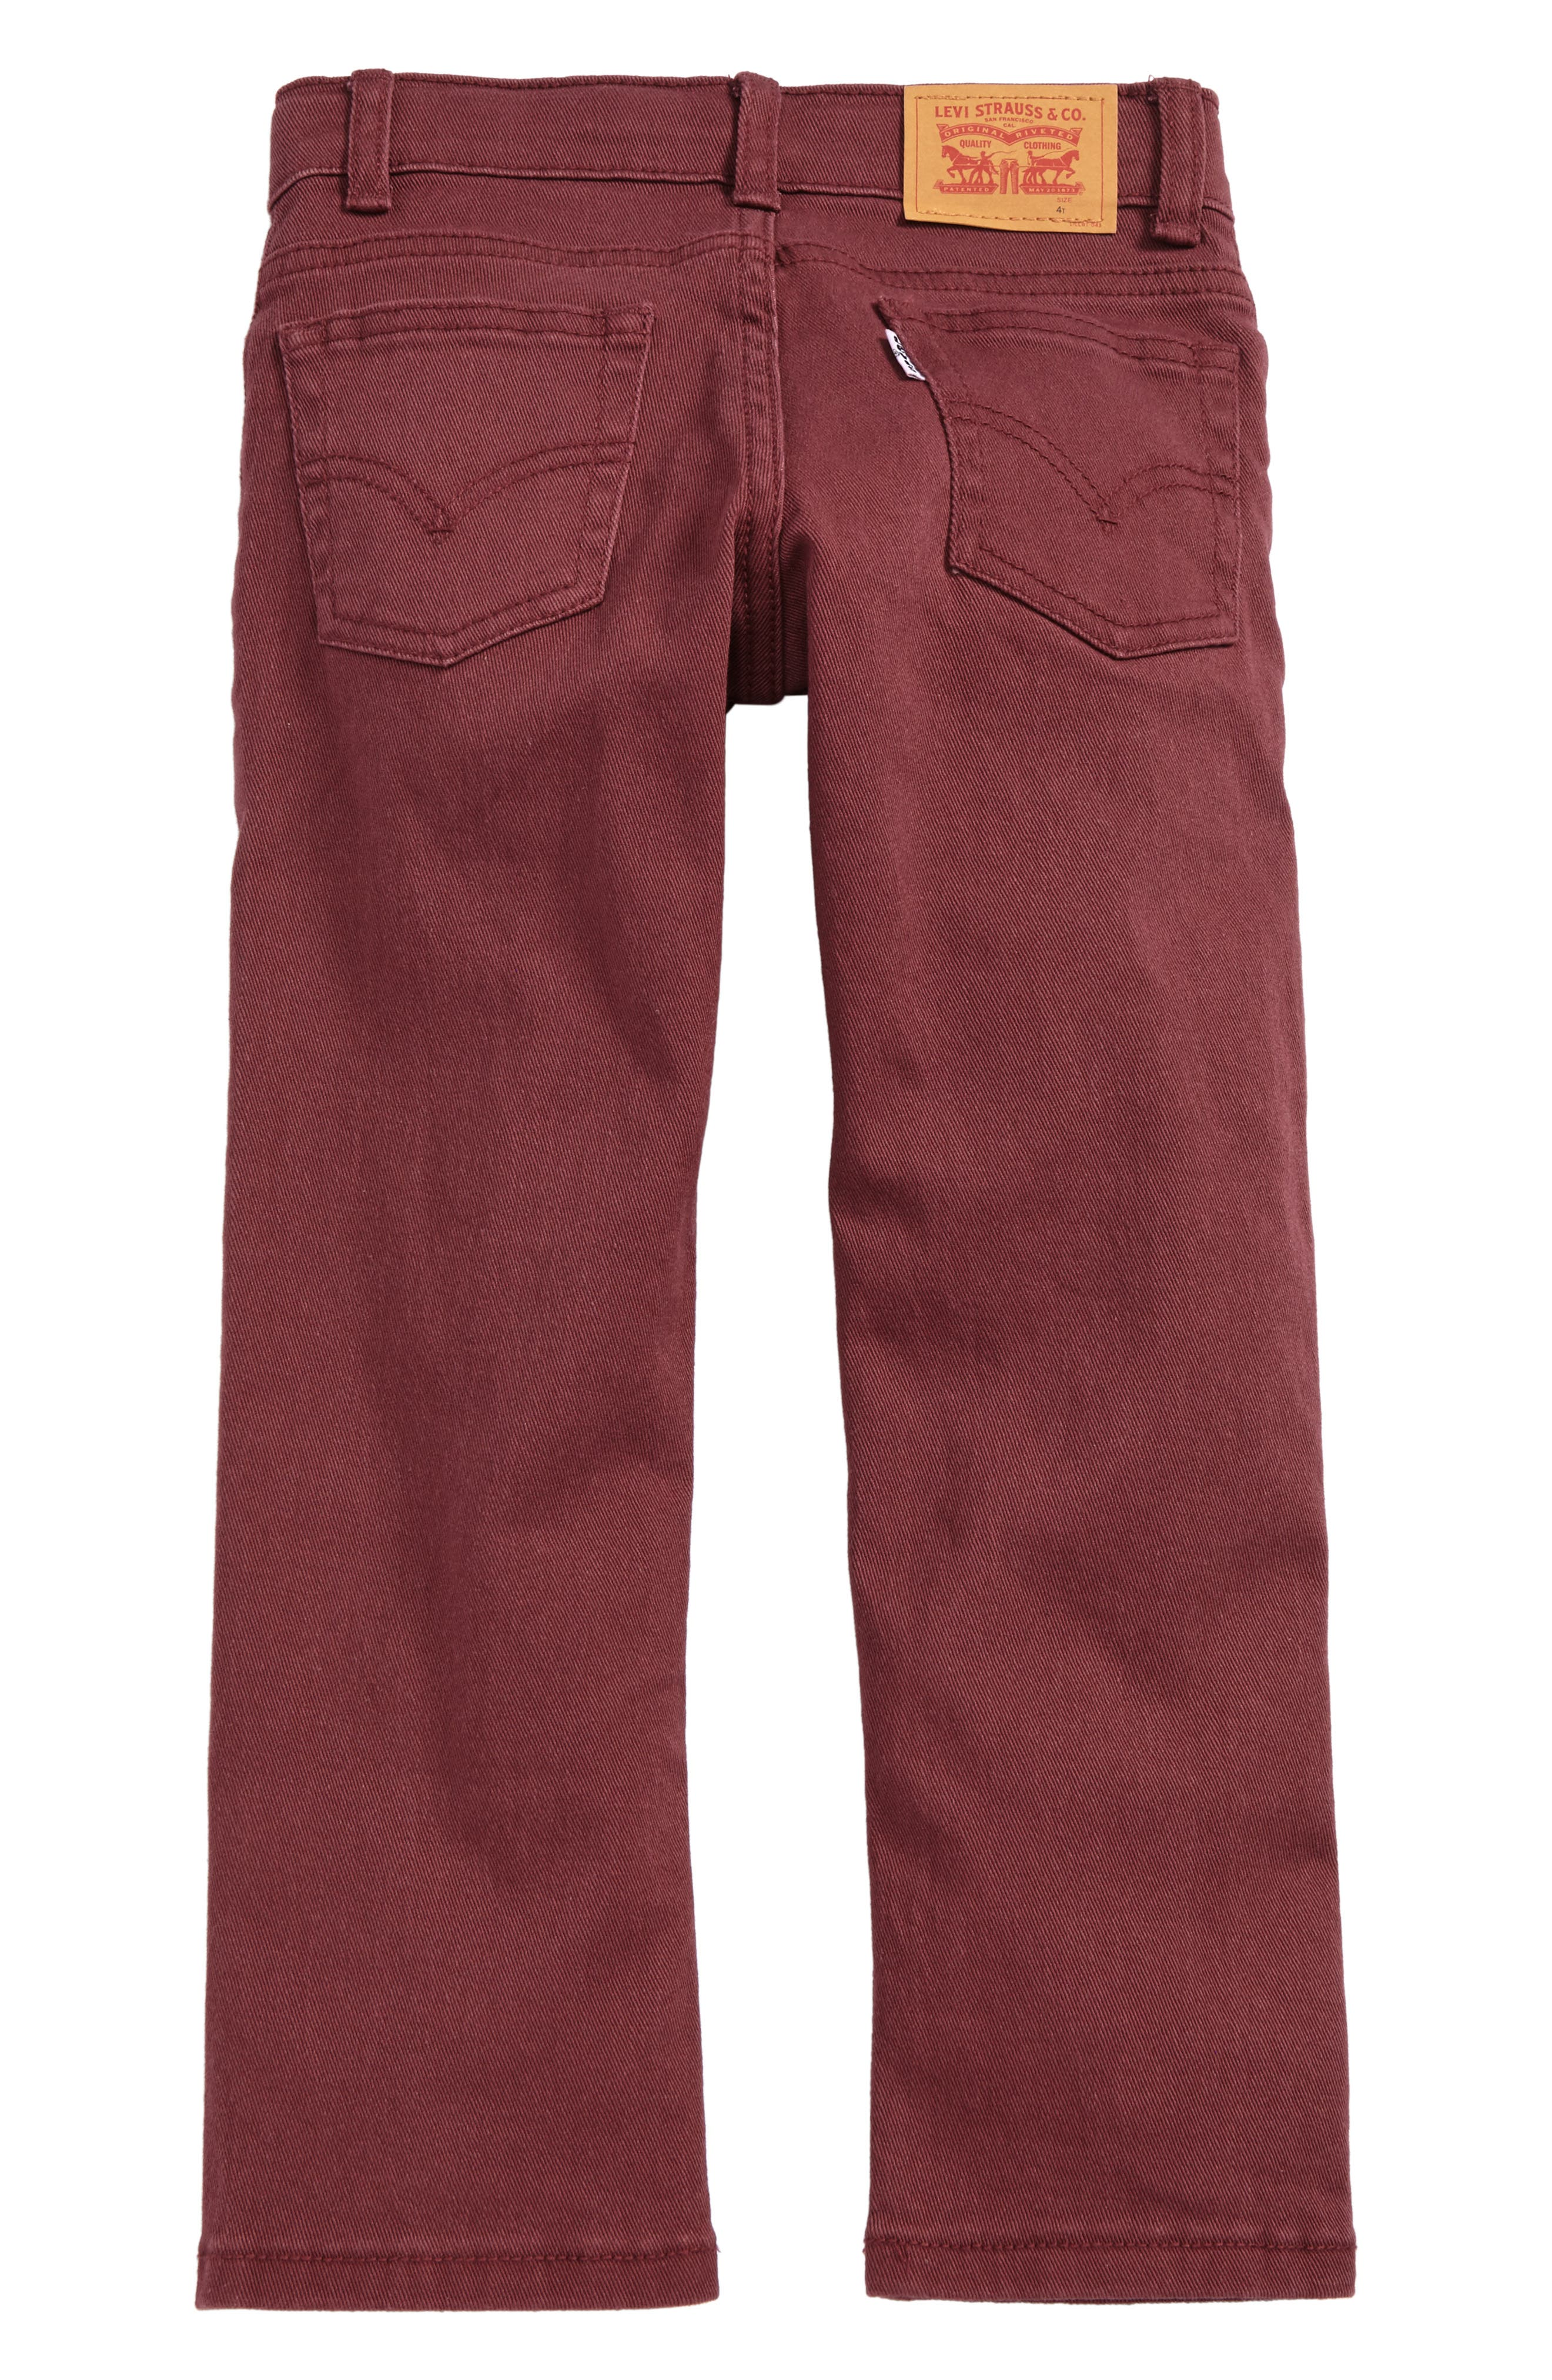 Alternate Image 2  - Levi's® 511™ Slim Fit Jeans (Toddler Boys & Little Boys)